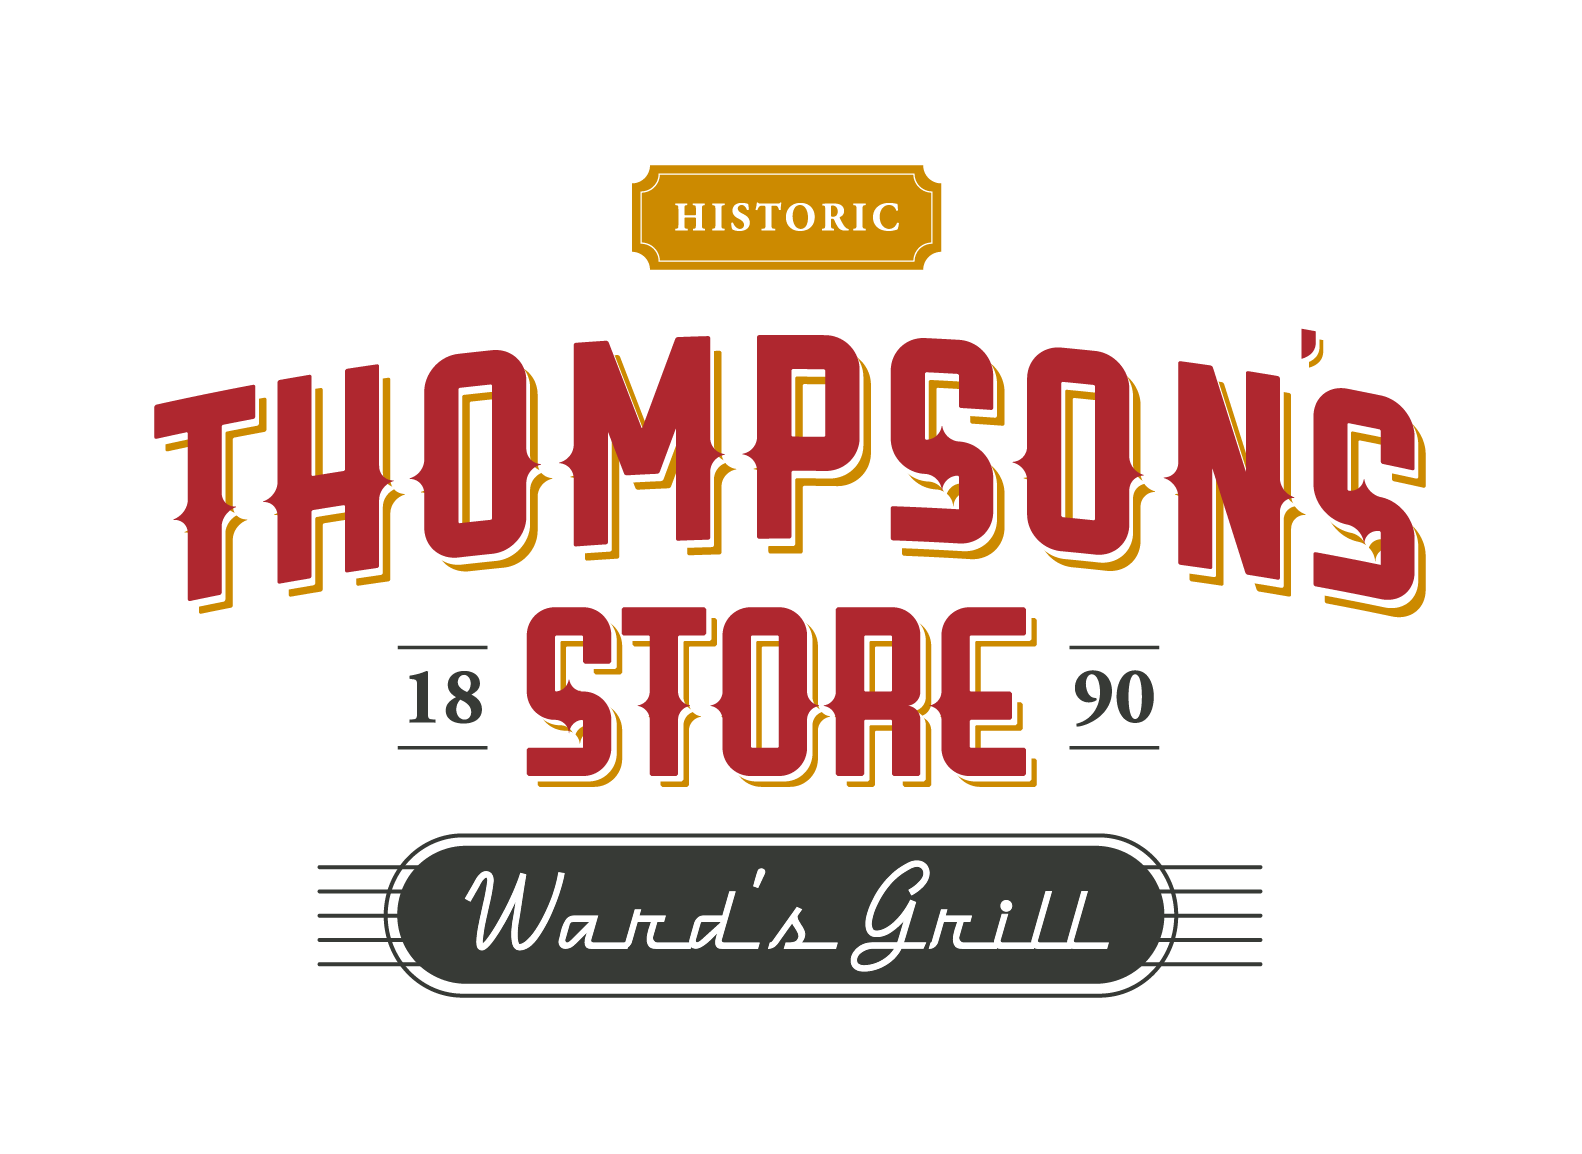 Thompsons Store | Ward's Grille Mobile Logo